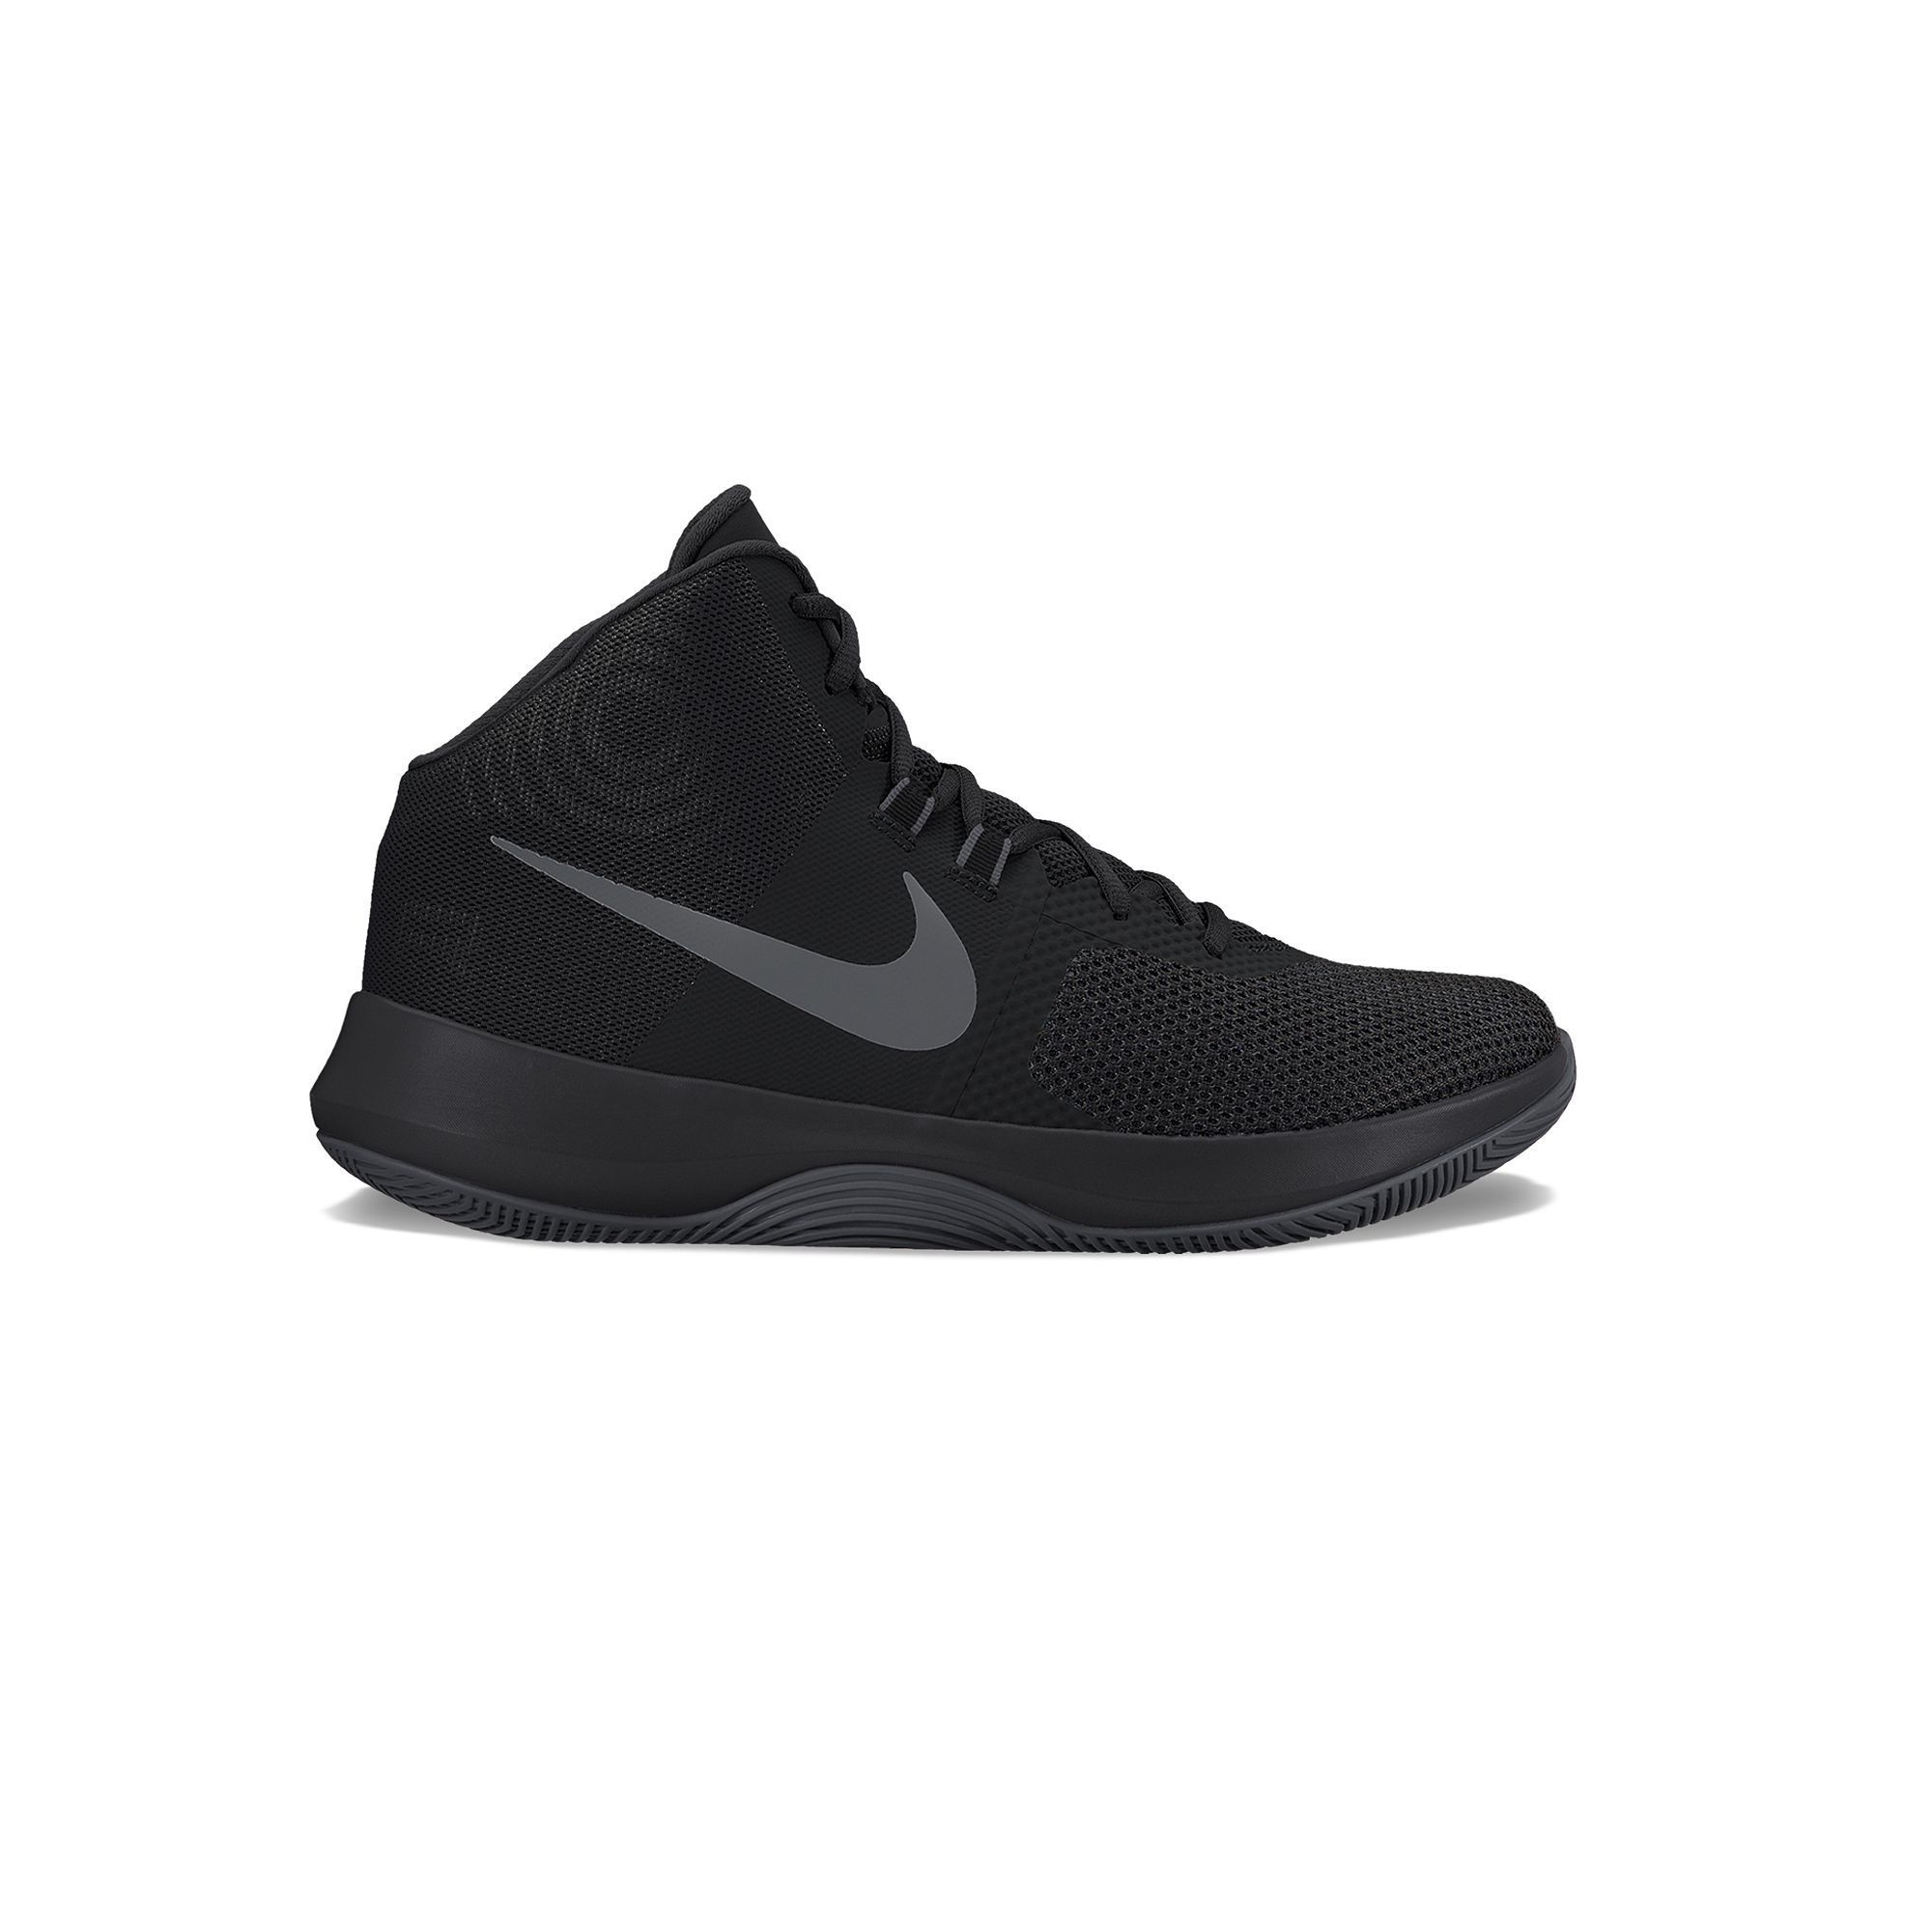 67f54d57aa Nike Precision NBK Men s Basketball Shoes in 2019